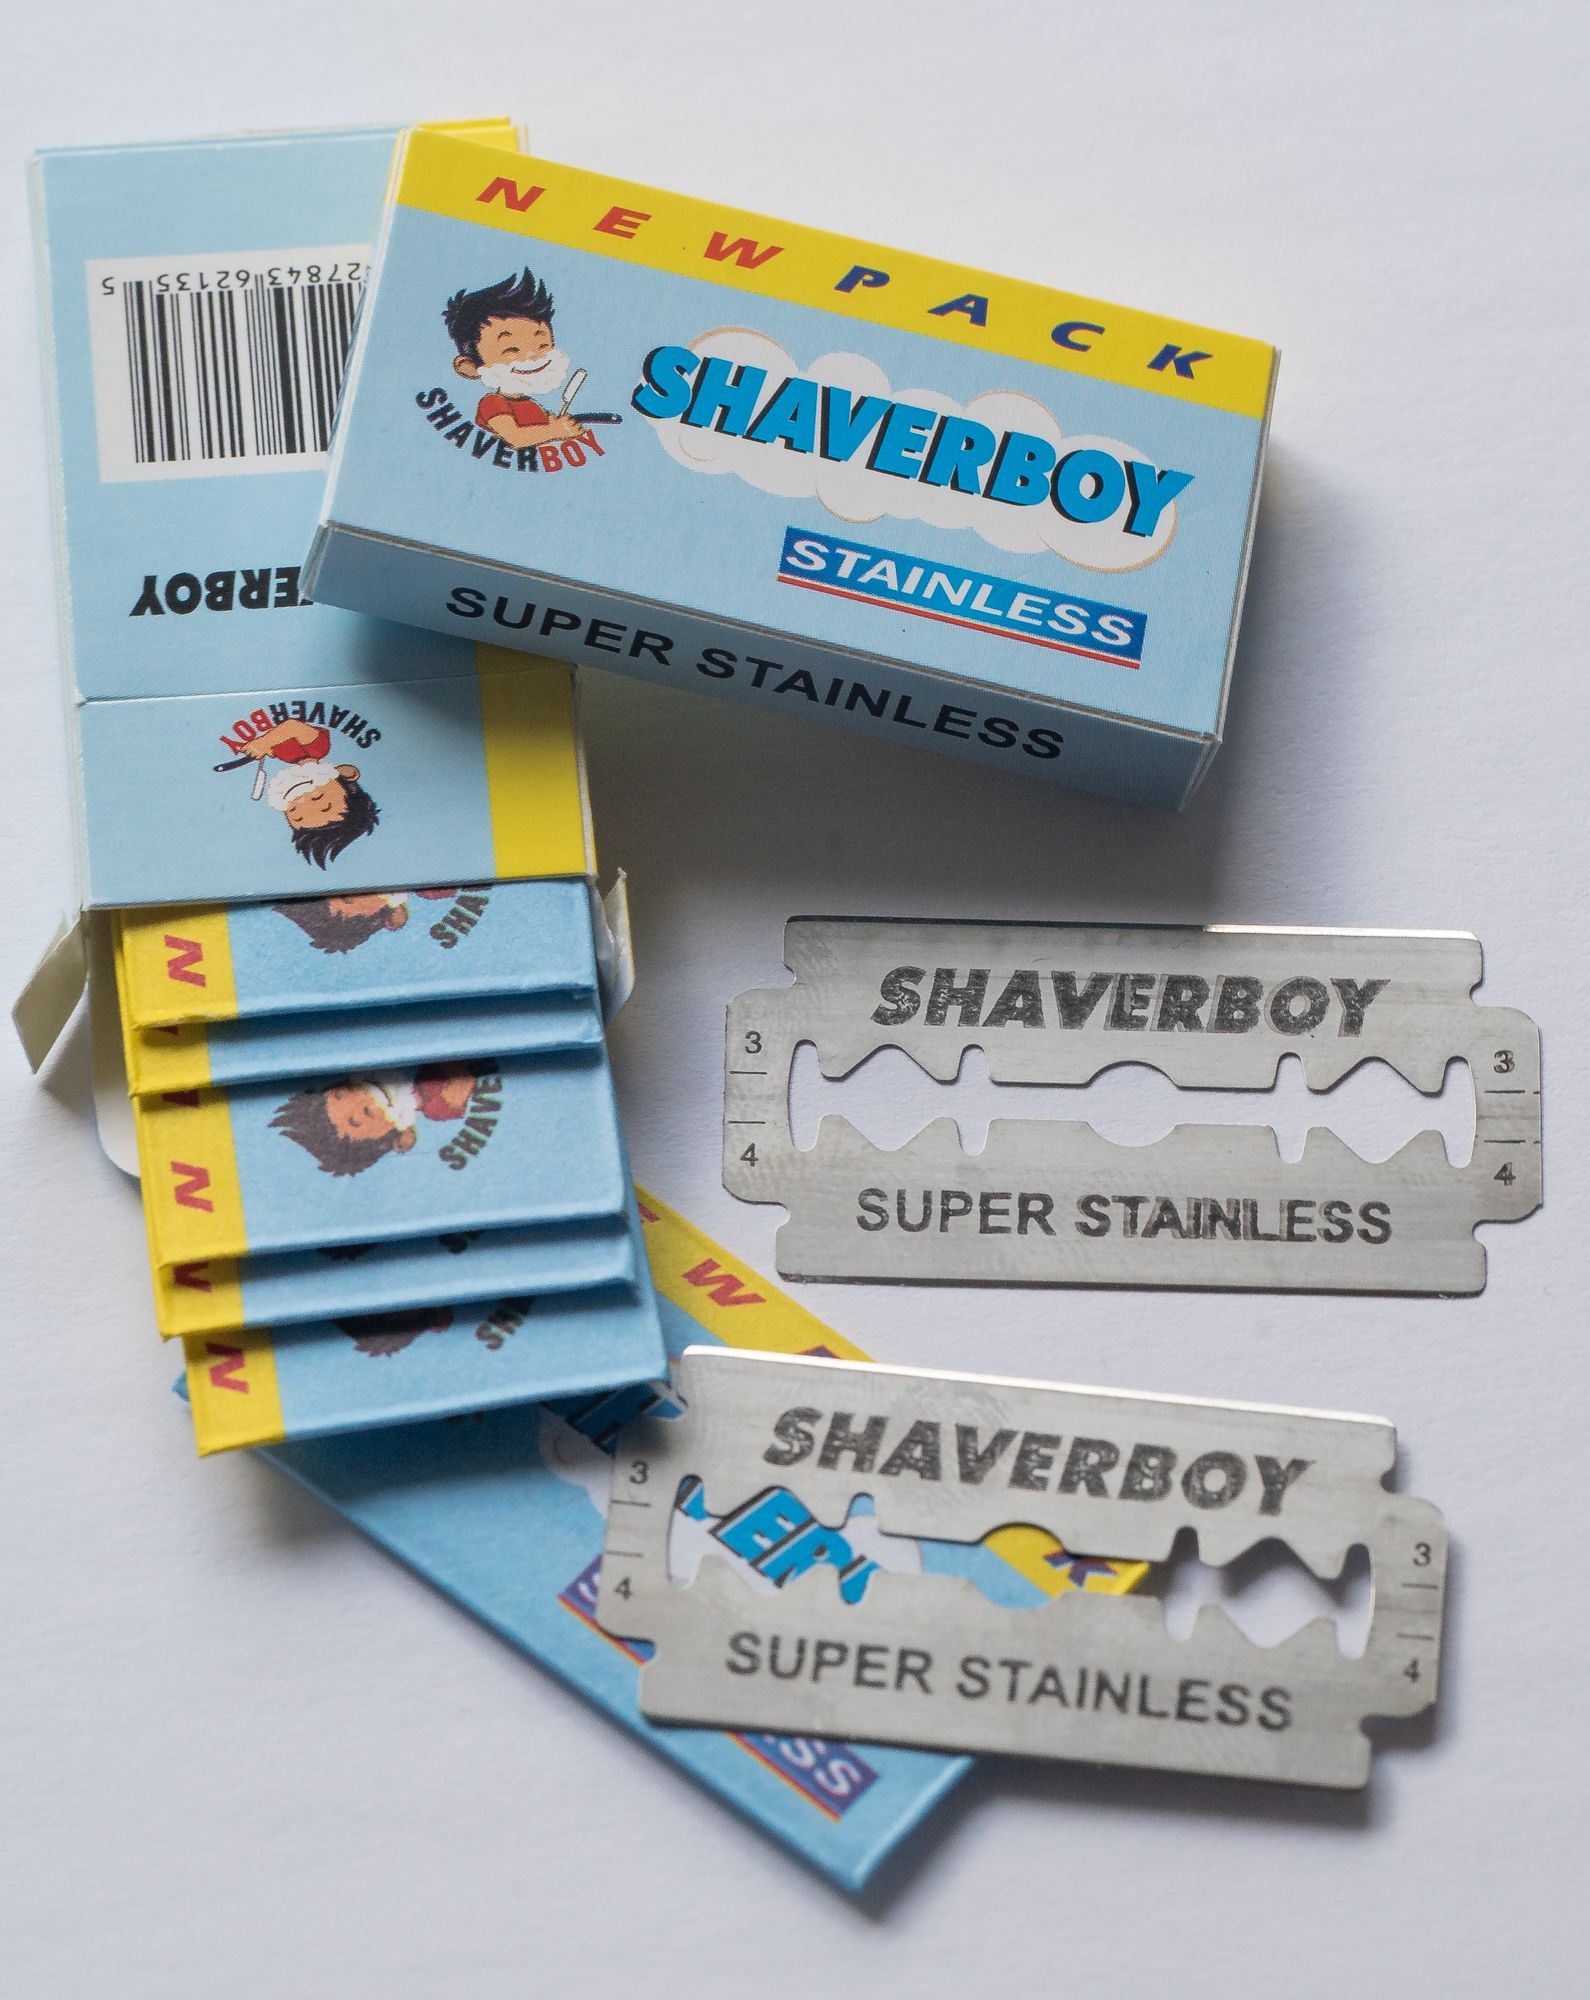 The open Shaverboy blade tuck. Candy, Shaving, Food